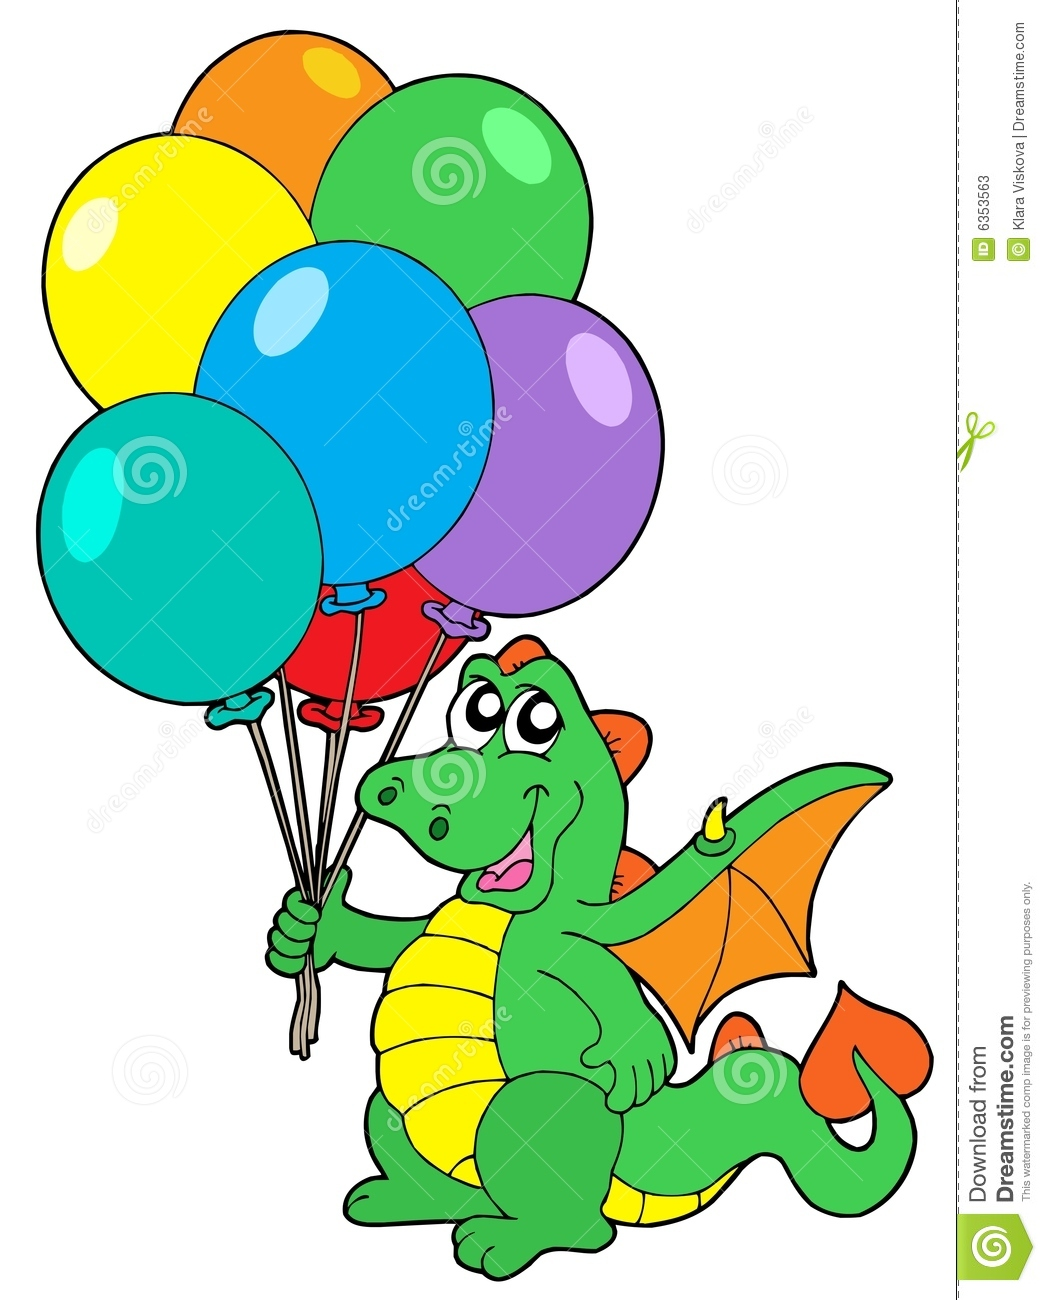 Cute Dragon With Balloons Stock Photos - Image: 6353563